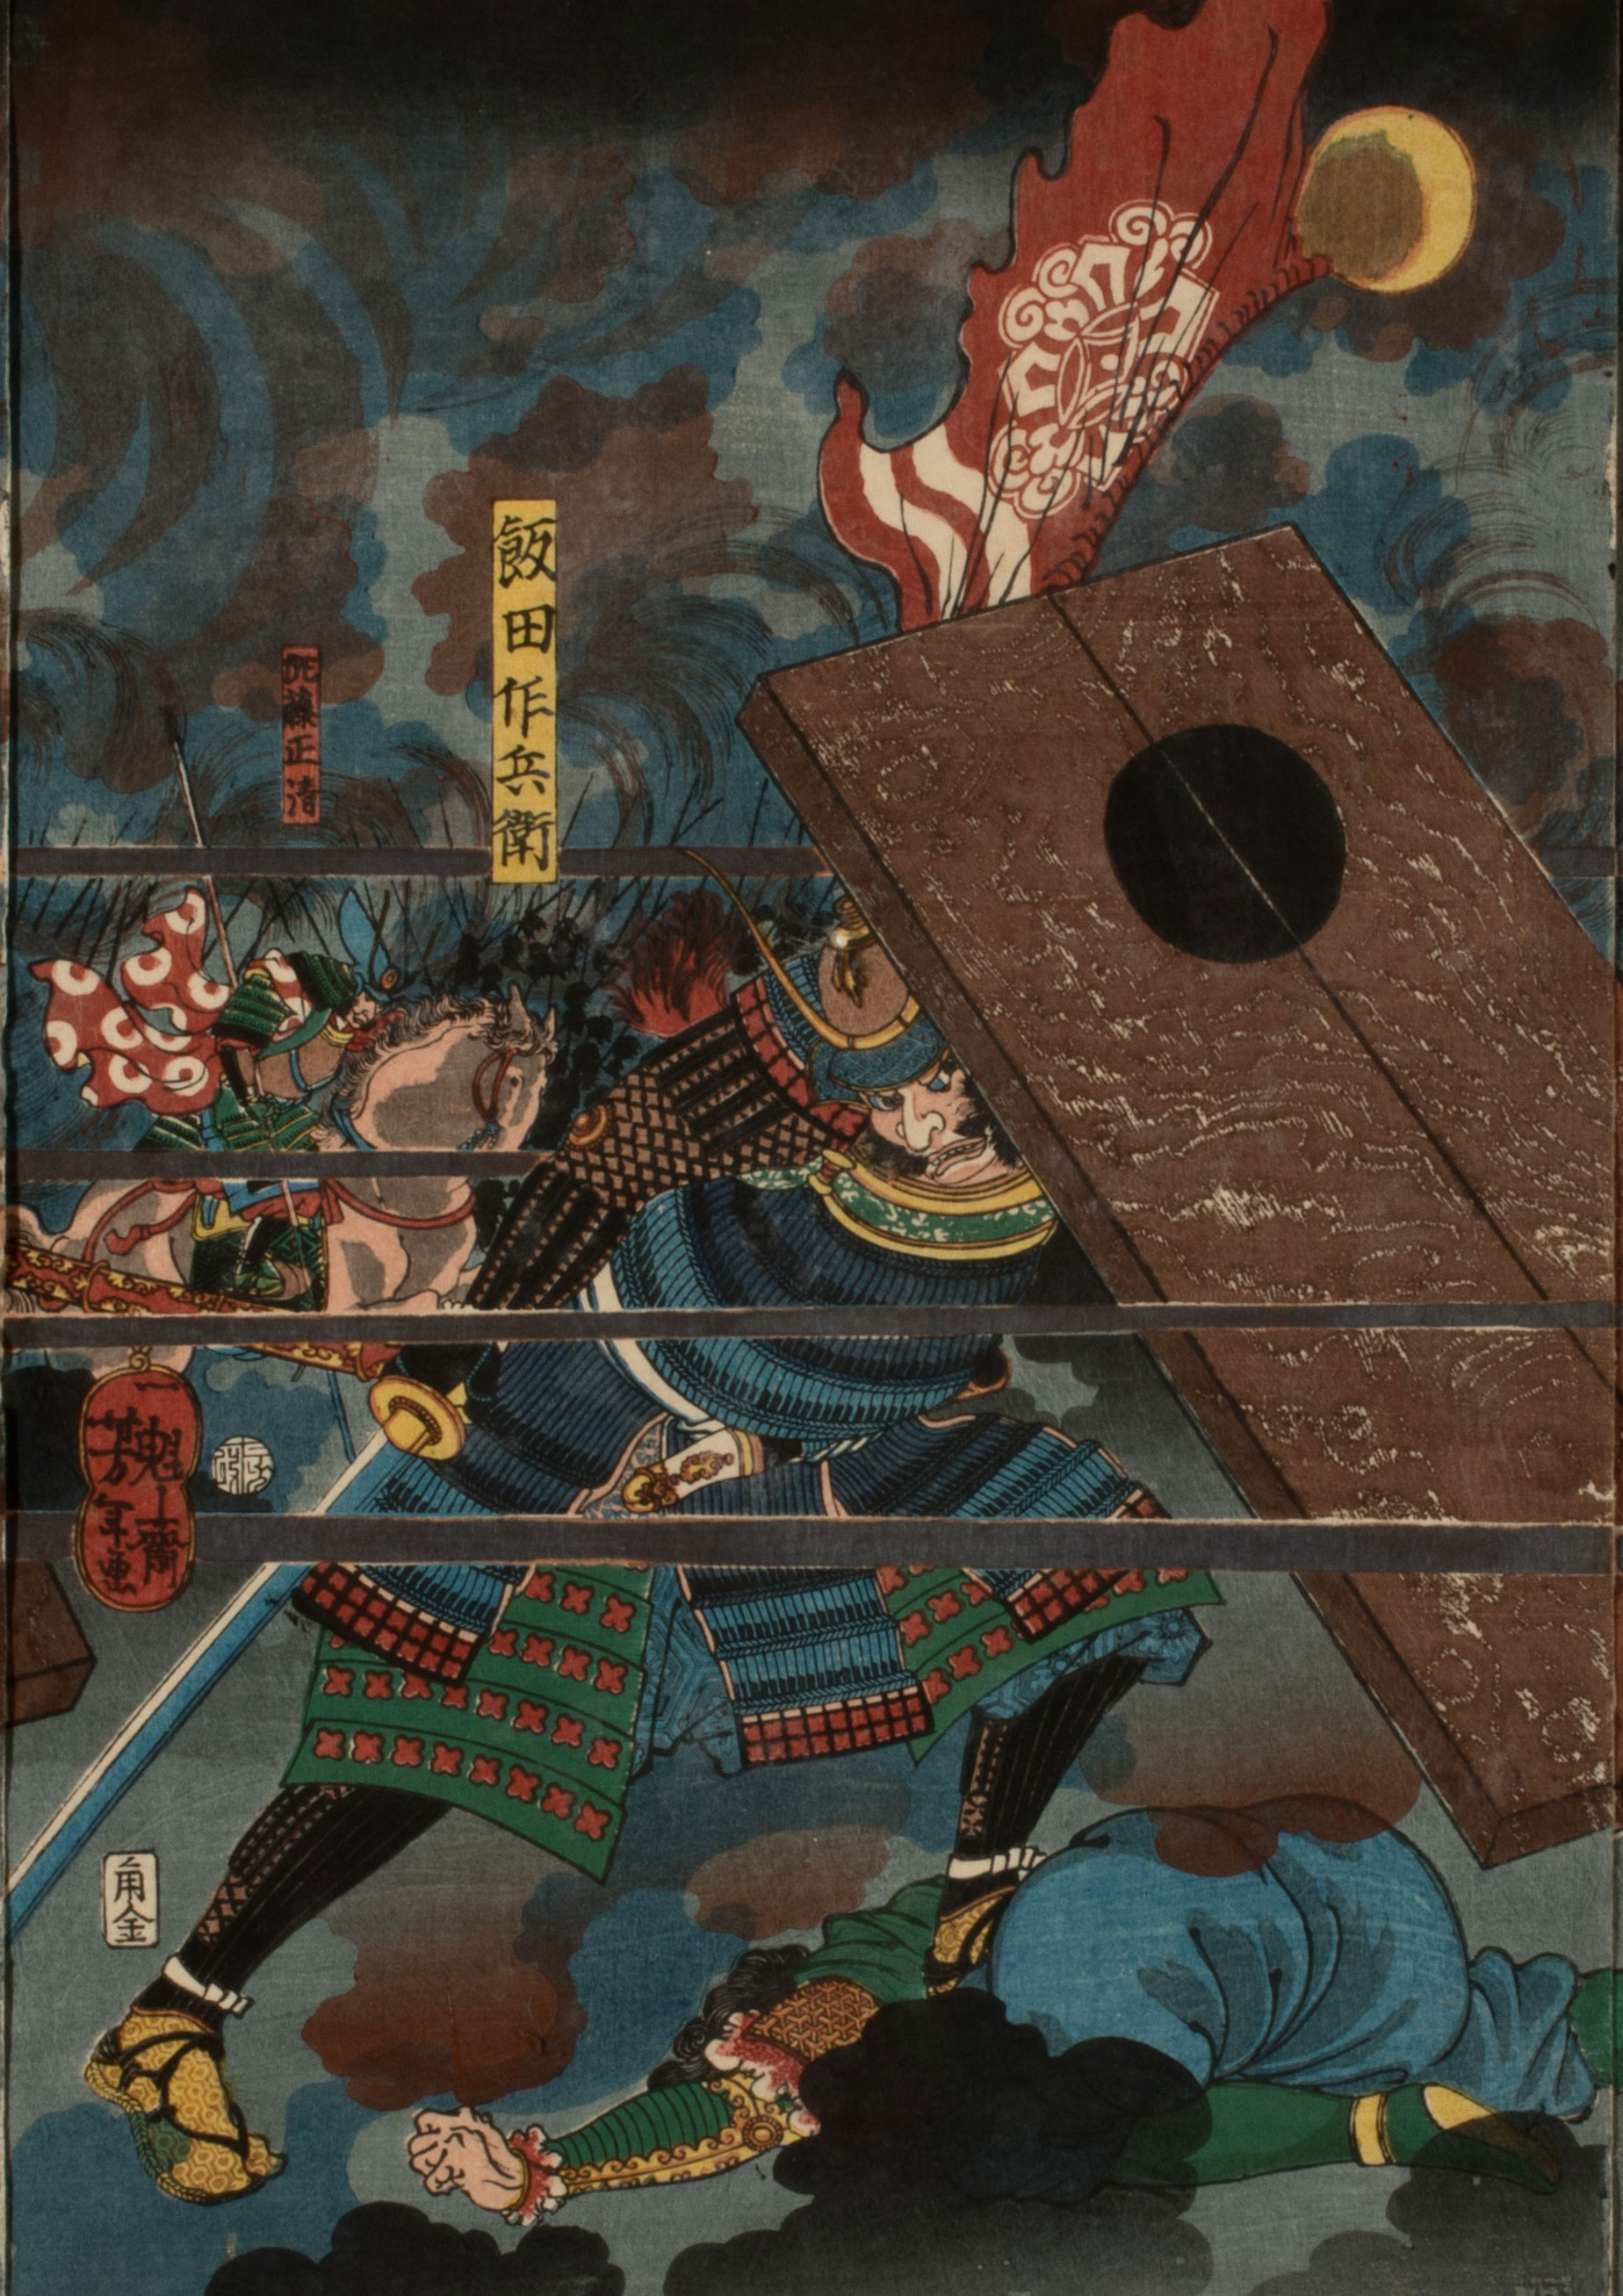 Detail-b---General-Masakiyo-at-Shinshu-Castle-during-the-Invasion-of-Korea-in-the-1590s,-1863,by Tsukioka Yoshitoshi_Philadelphia Museum of Art_950 W